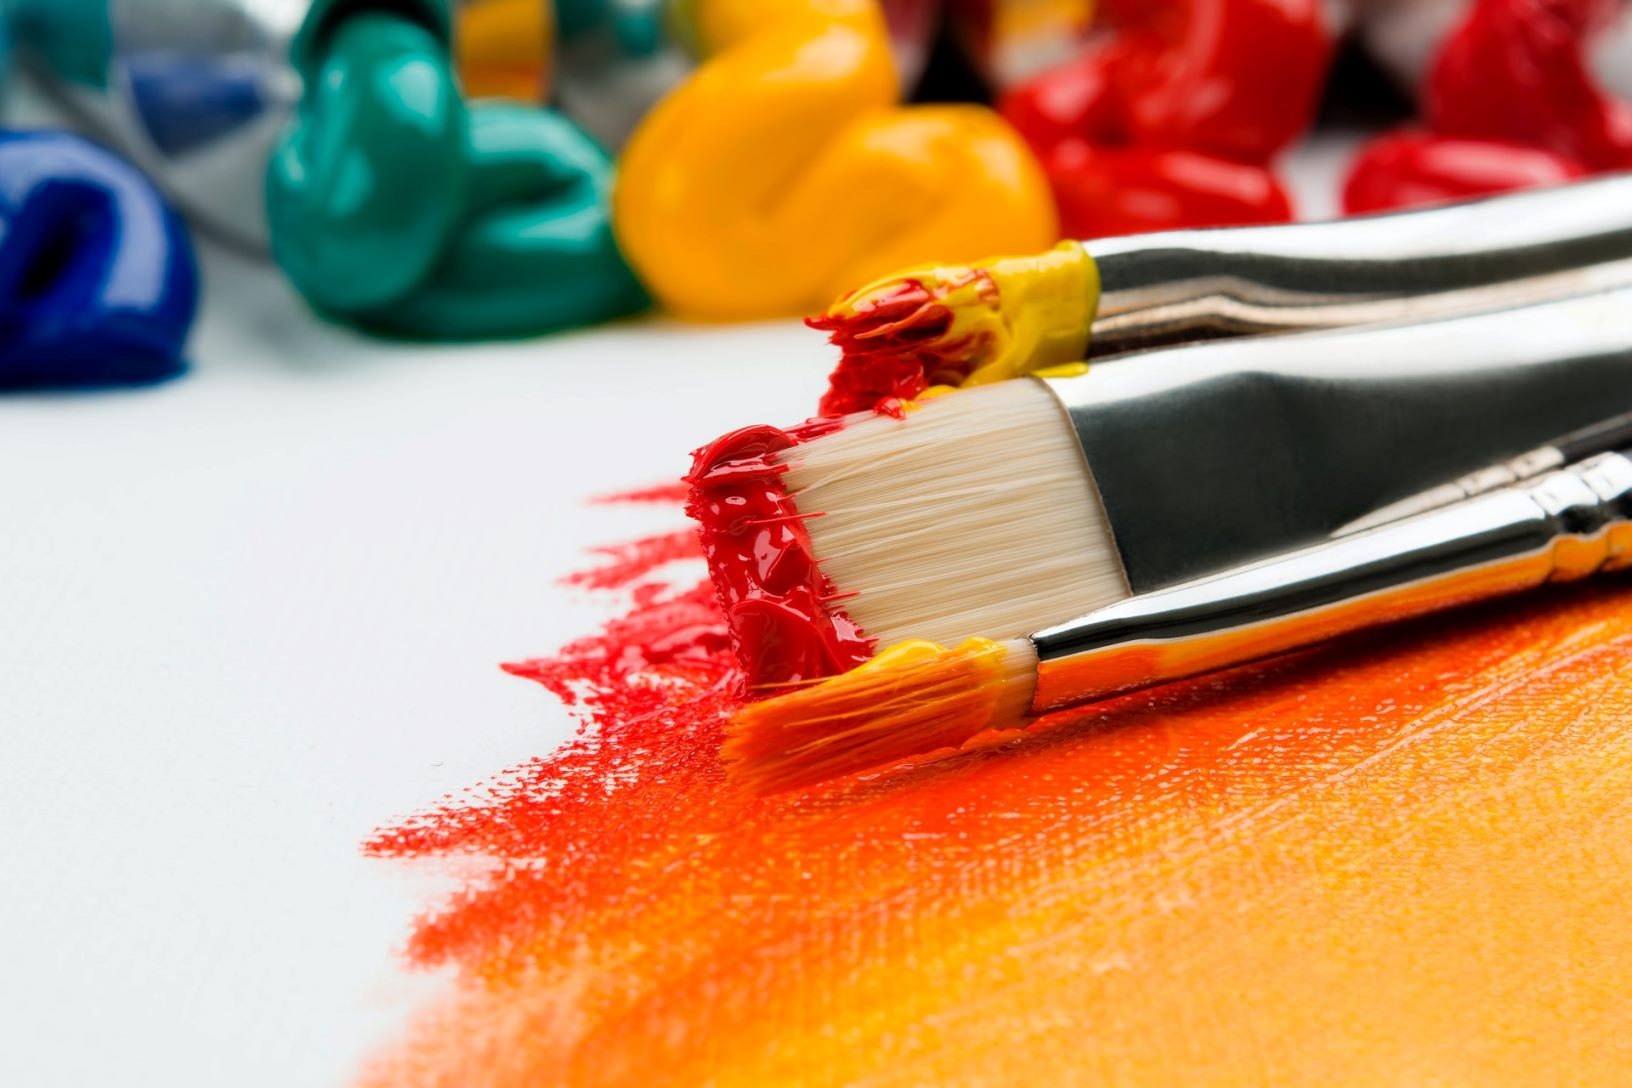 Art as a Study Subject in the Classroom